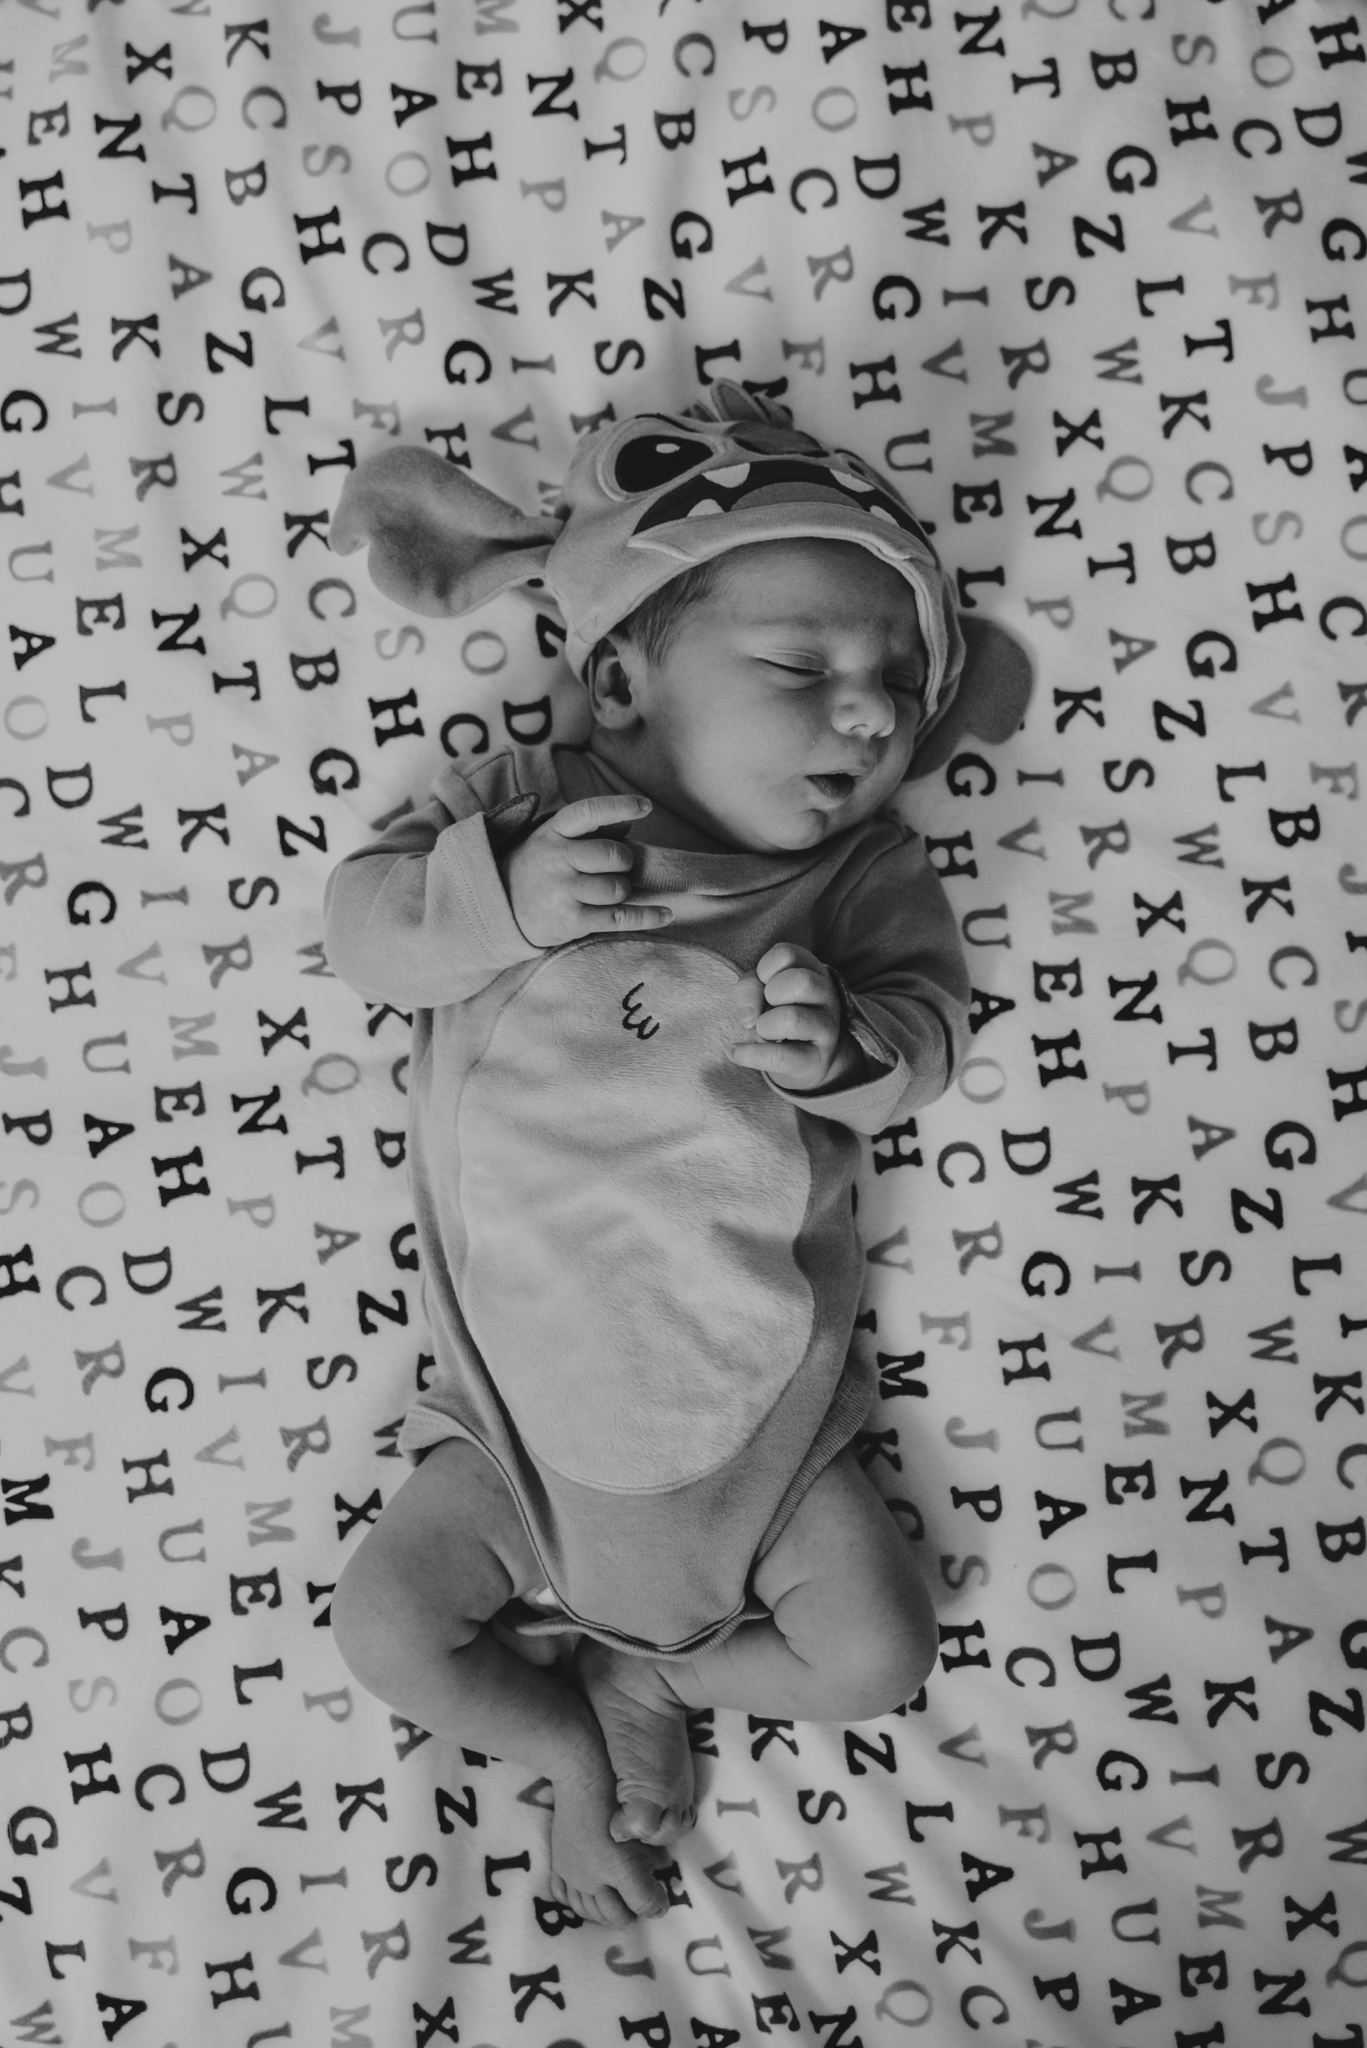 The newborn baby is dressed as the Disney character Stitch while in his nursery in Wake Forest, a black and white image by Rose Trail Images.